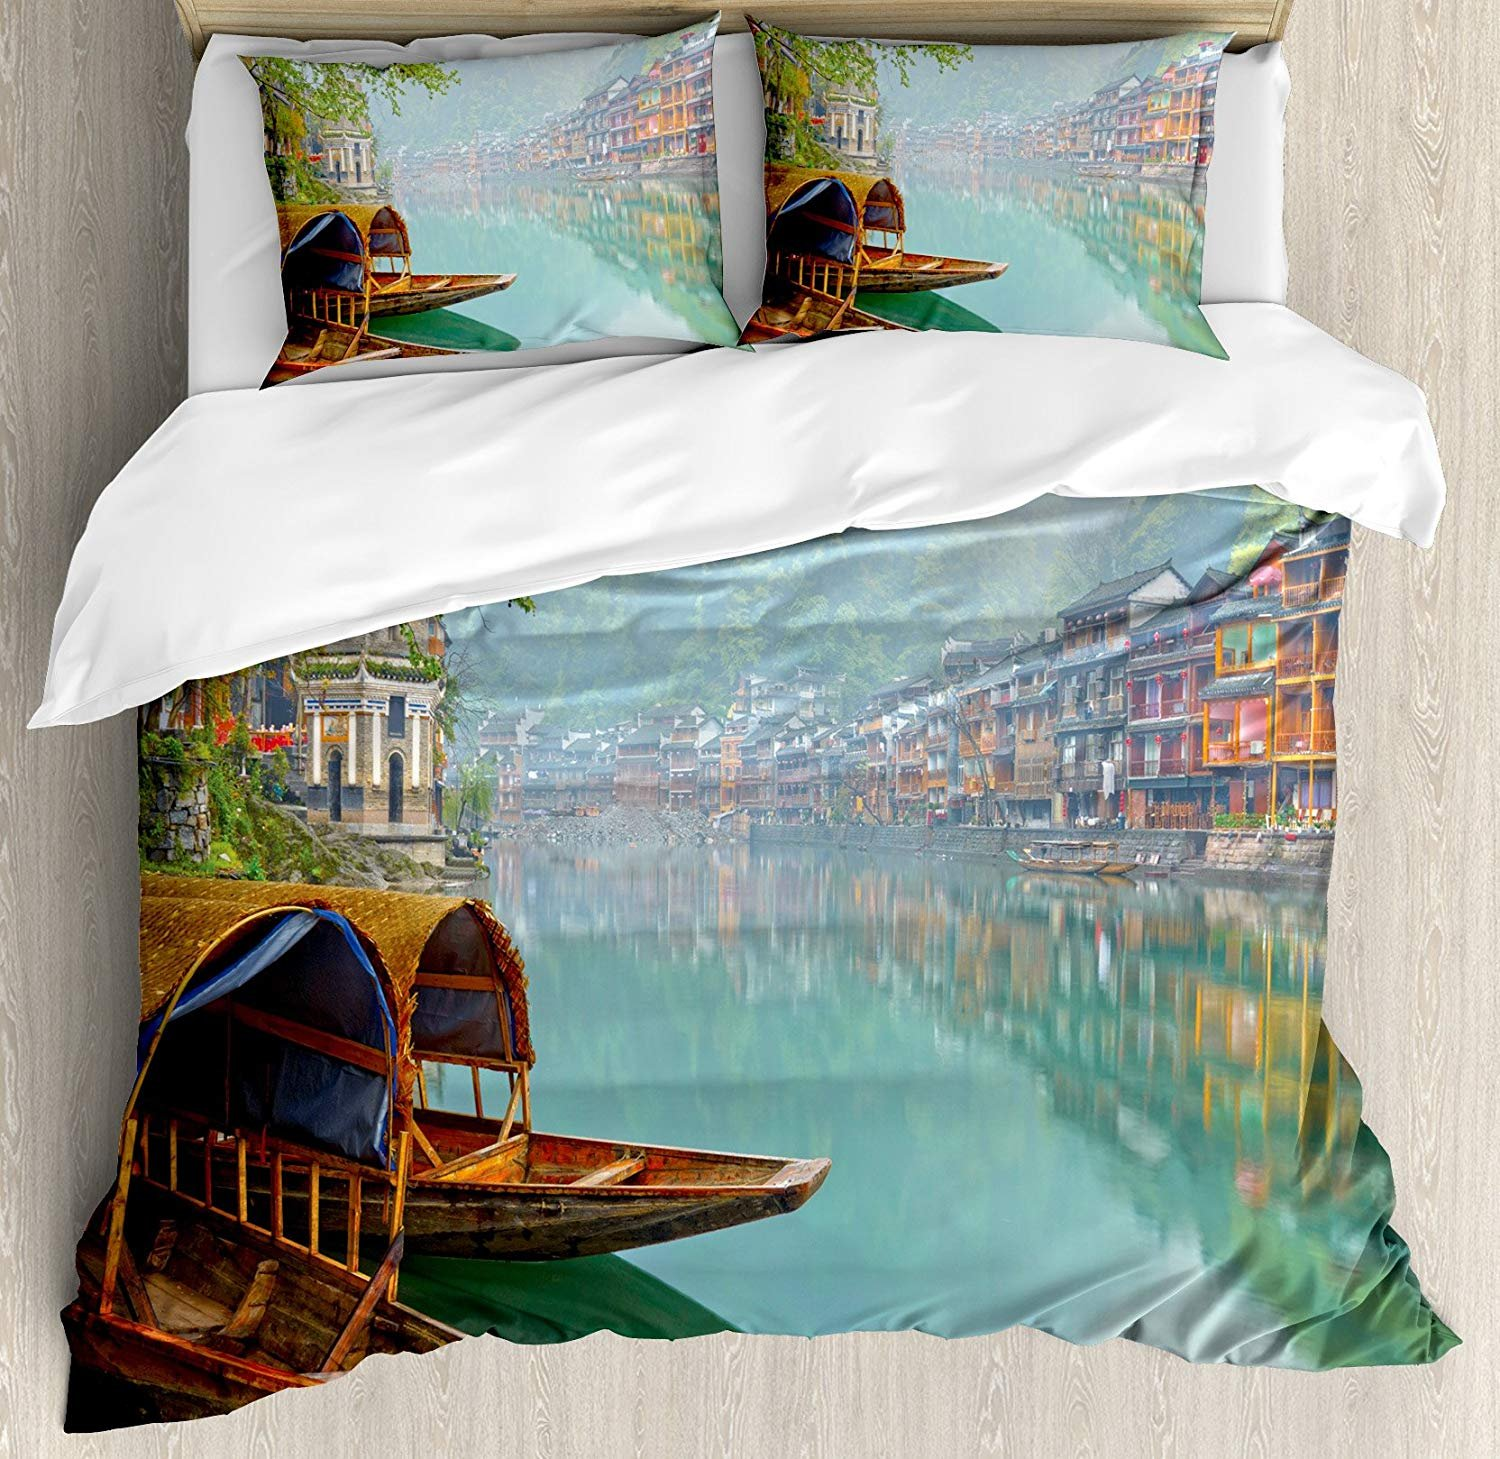 Full Size Asian 3 PCS Duvet Cover Set, Old Chinese Suburbs Lake Canal with Wood Boats Foggy Asian Eastern Rural Scene Art, Bedding Set Bedspread for Children/Teens/Adults/Kids, Multicolor